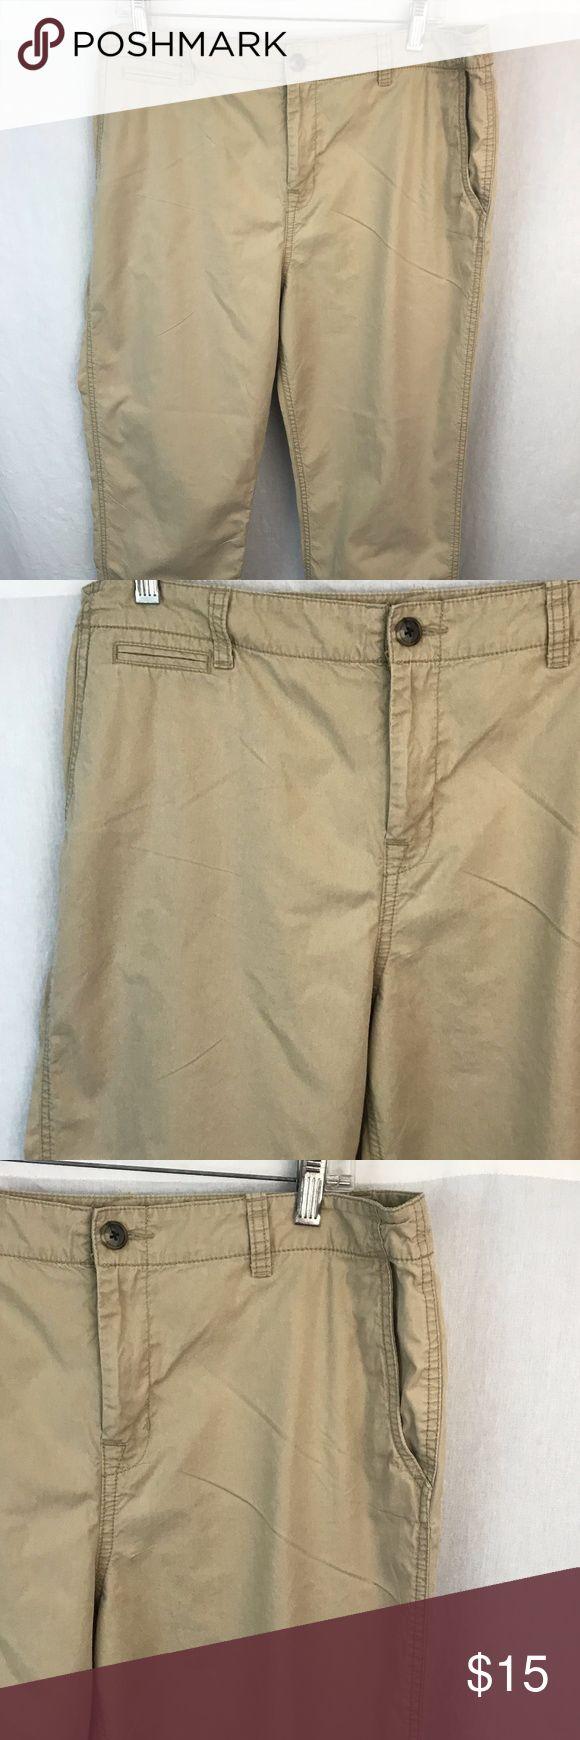 "Lauren Ralph Lauren Lightweight Chinos Womens 10 Great pair of lightweight khaki slacks chinos by Lauren Ralph Lauren Women's Size 10.  Flat front.  They zipper and button in the front.    Great pre-owned condition.  No holes, stains or frays.  10  Waist = 18"" measured flat.  Rise = 11"".  Inseam - 30"".  Leg opening = 7"".  Thanks for looking and please feel free to ask questions. Lauren Ralph Lauren Pants Trousers"